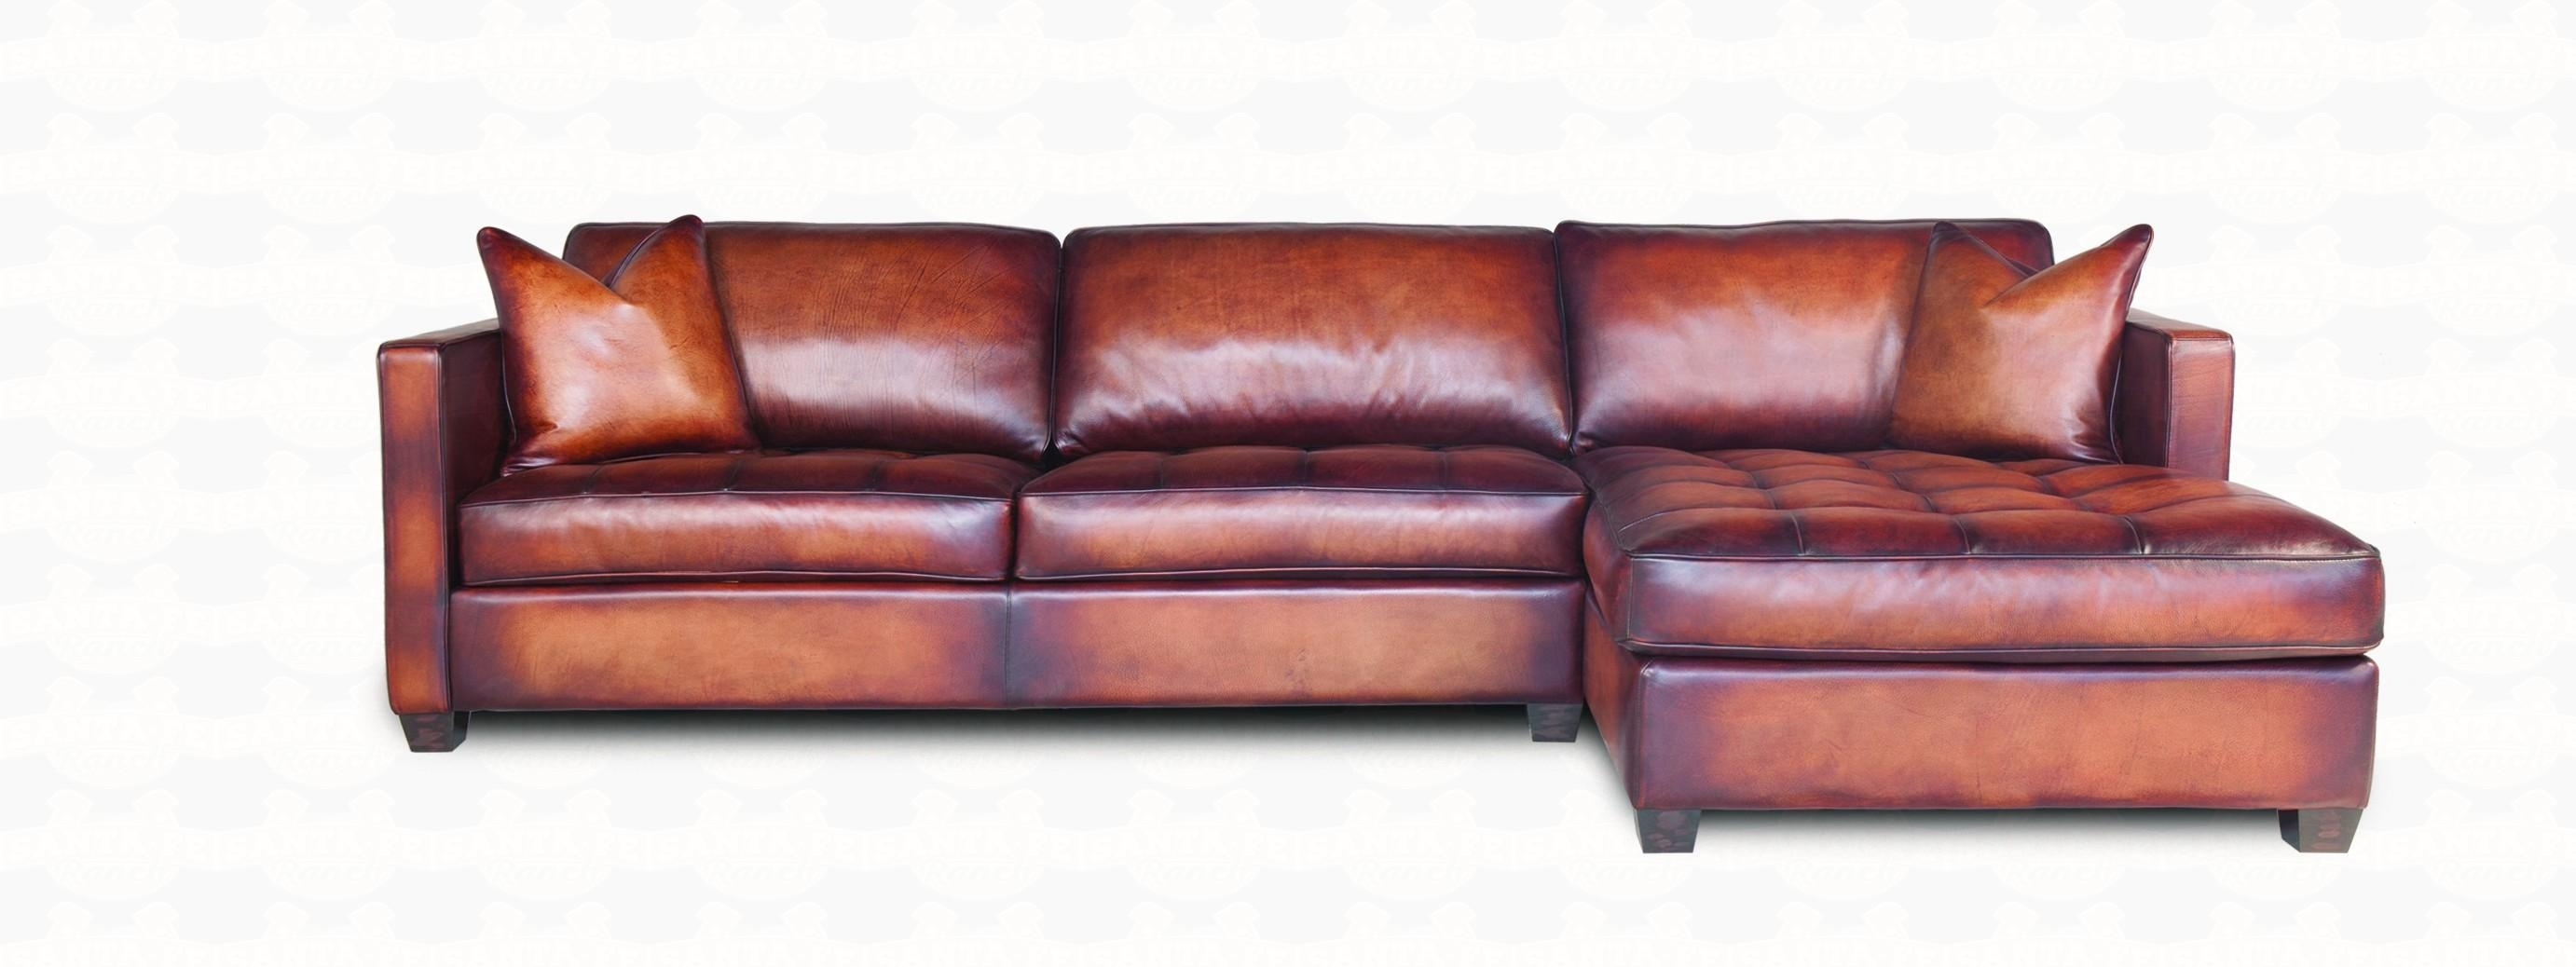 Sofas Center : Leather Sectional Sofas Closeouts In San Diego With With Regard To Sectional Sofa San Diego (Image 15 of 20)